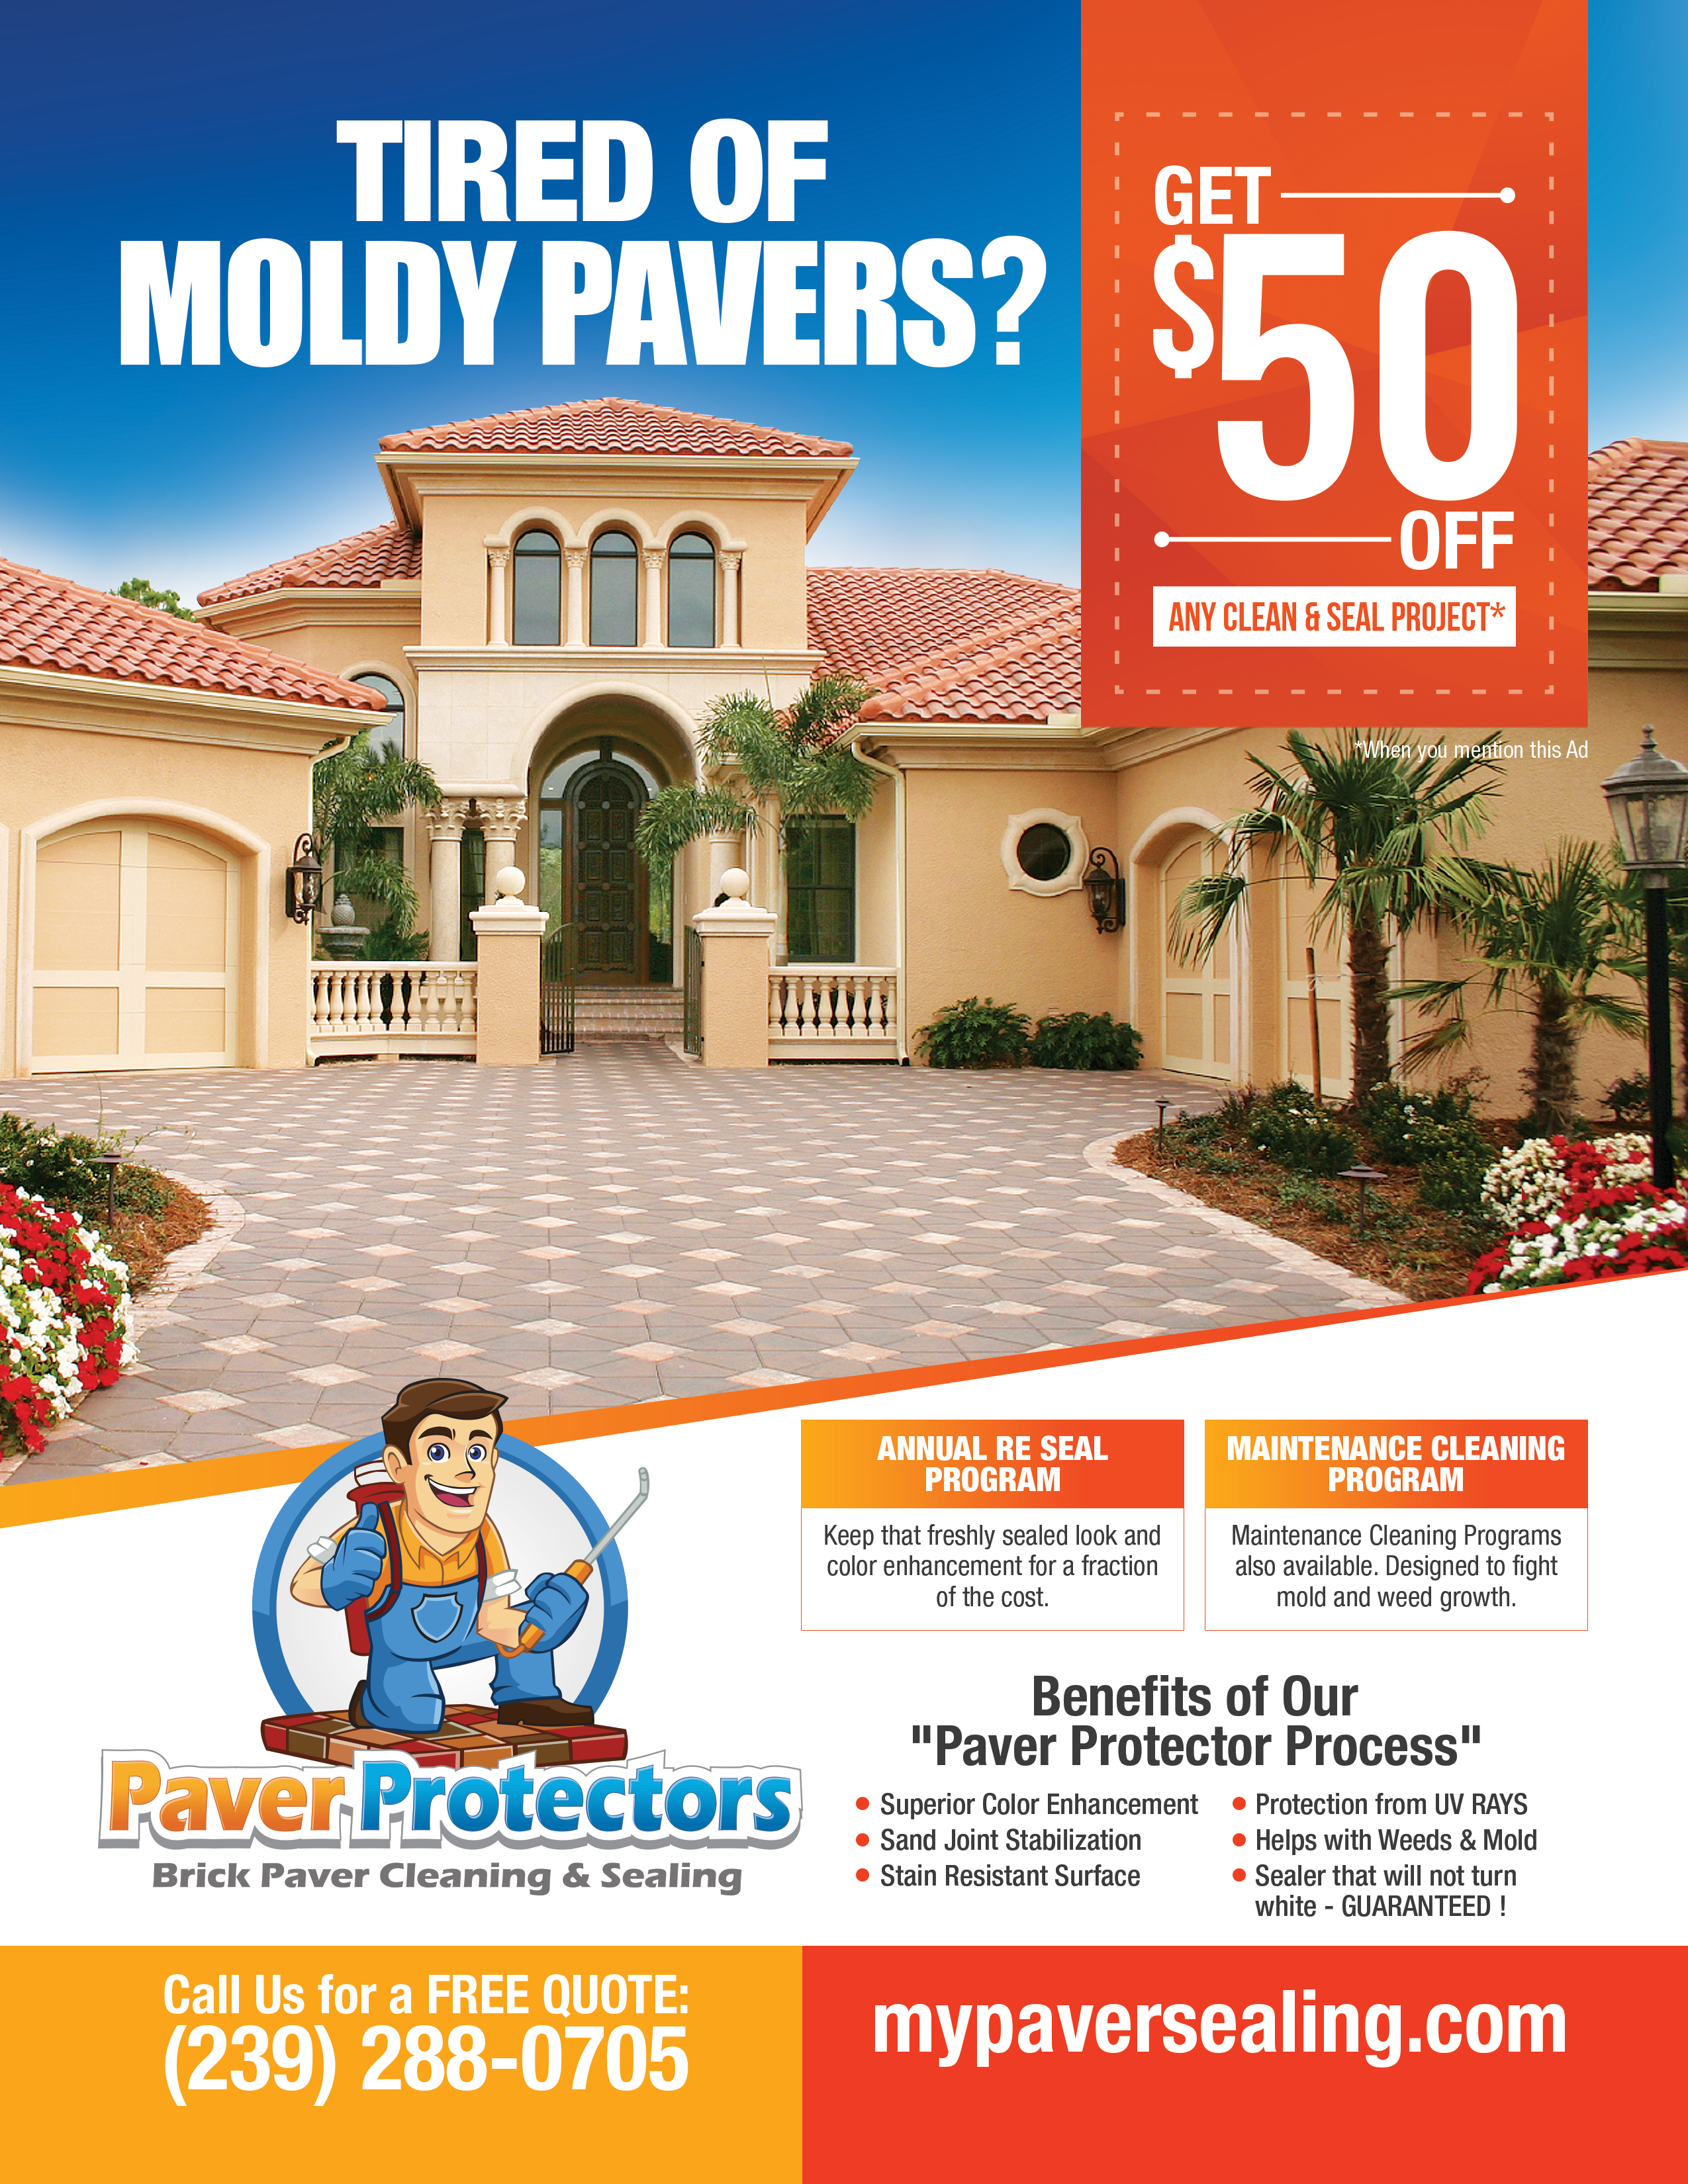 Create an 8.5 x 11 ad for Paver Protectors